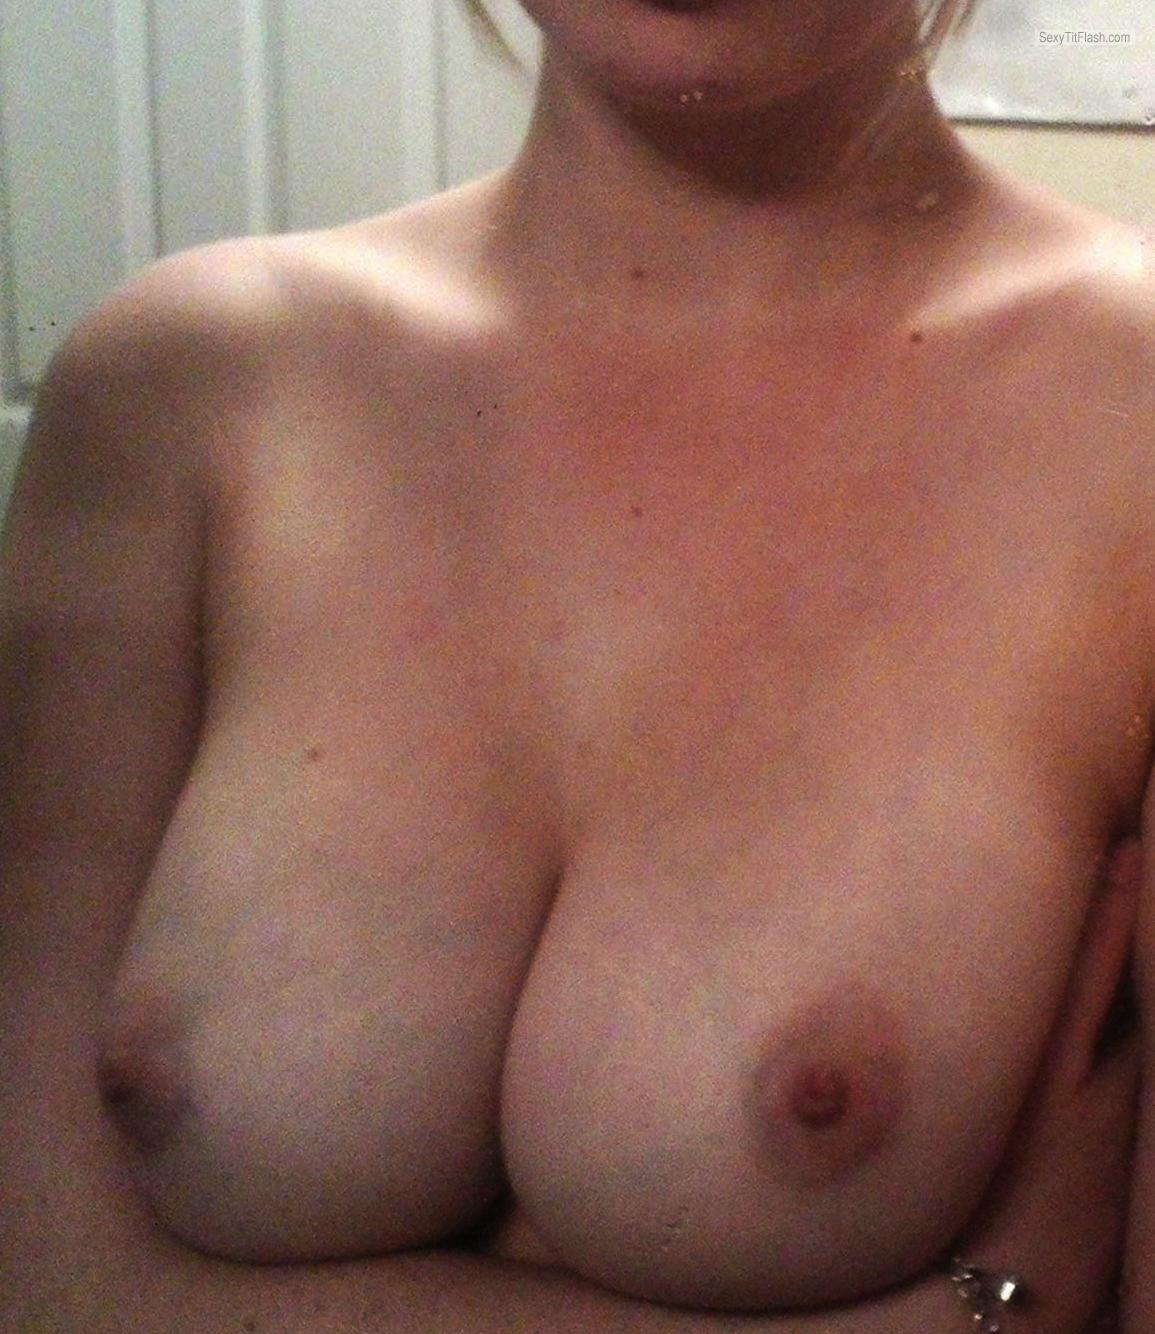 Medium Tits Of My Wife Jennifer